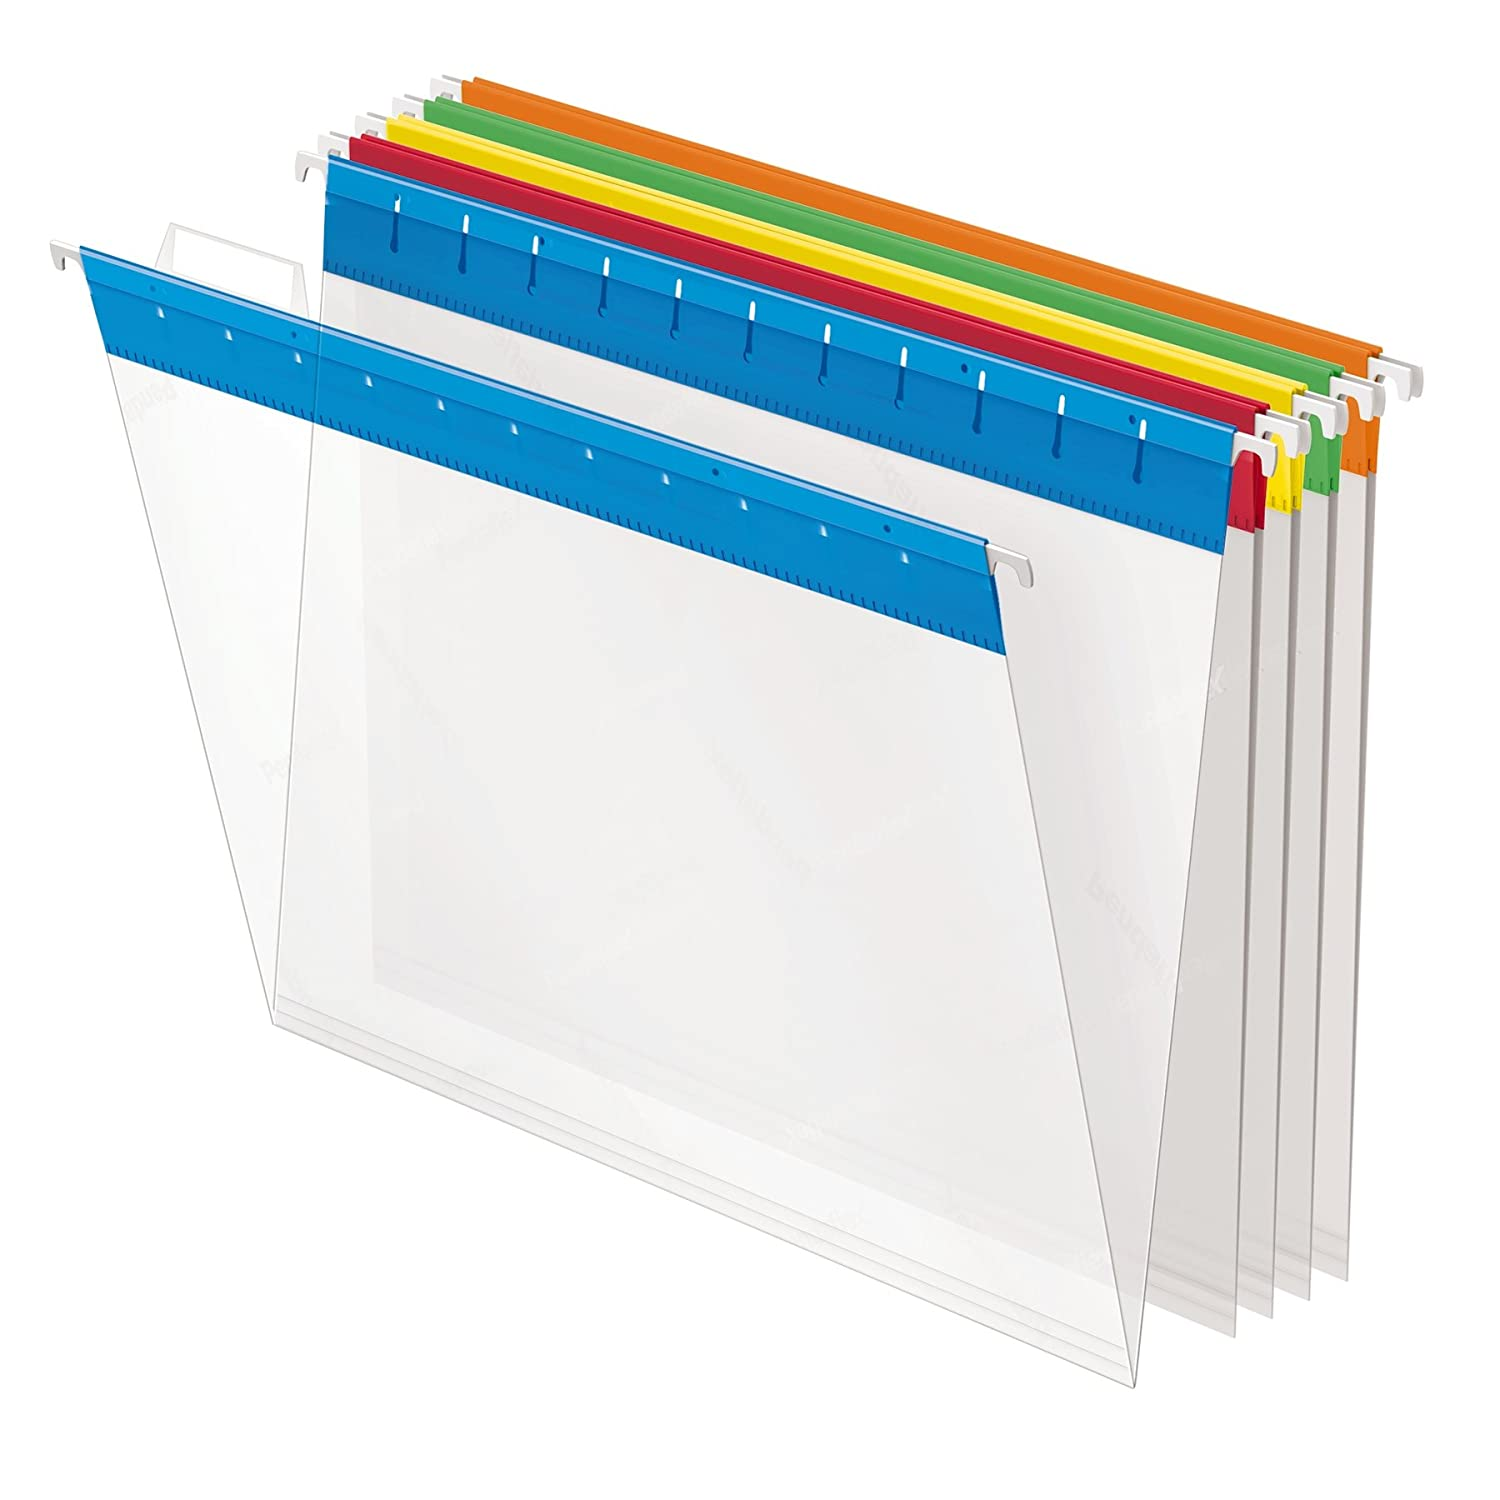 Pendaflex 55708 Poly Hanging File Folders, 1/5 Tab, Letter, Assorted Colors (Box of 25) Esselte Corporation